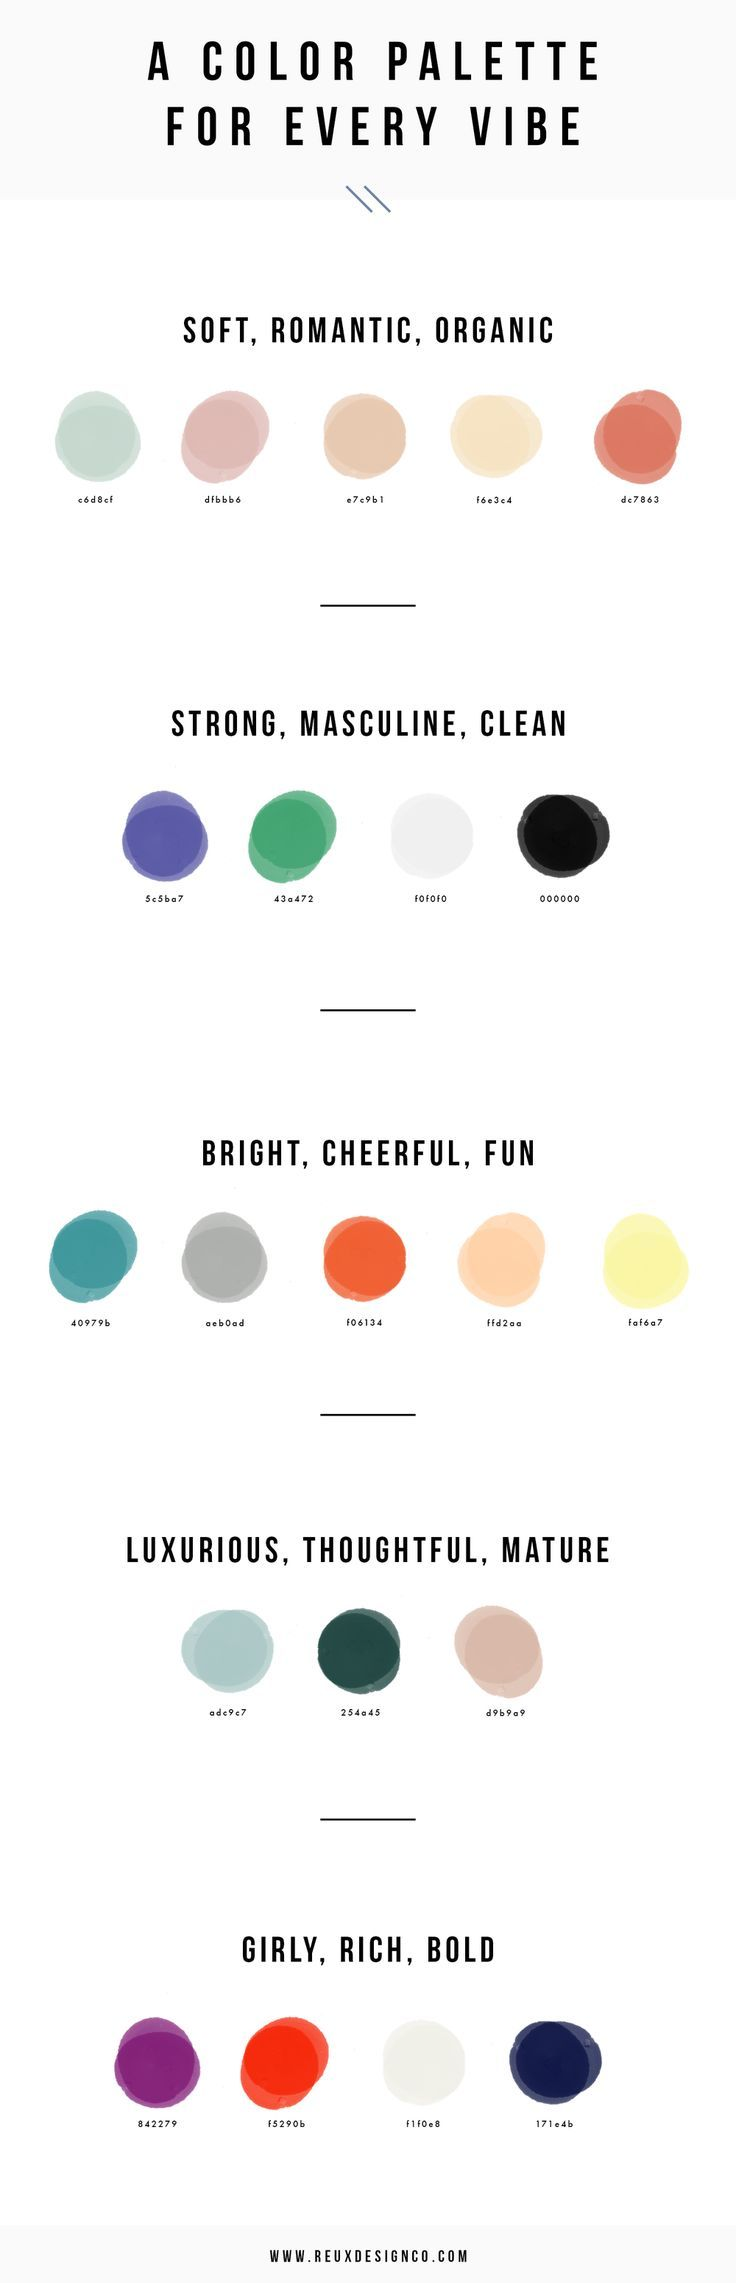 Color palette ideas | branding guide | Defining a …